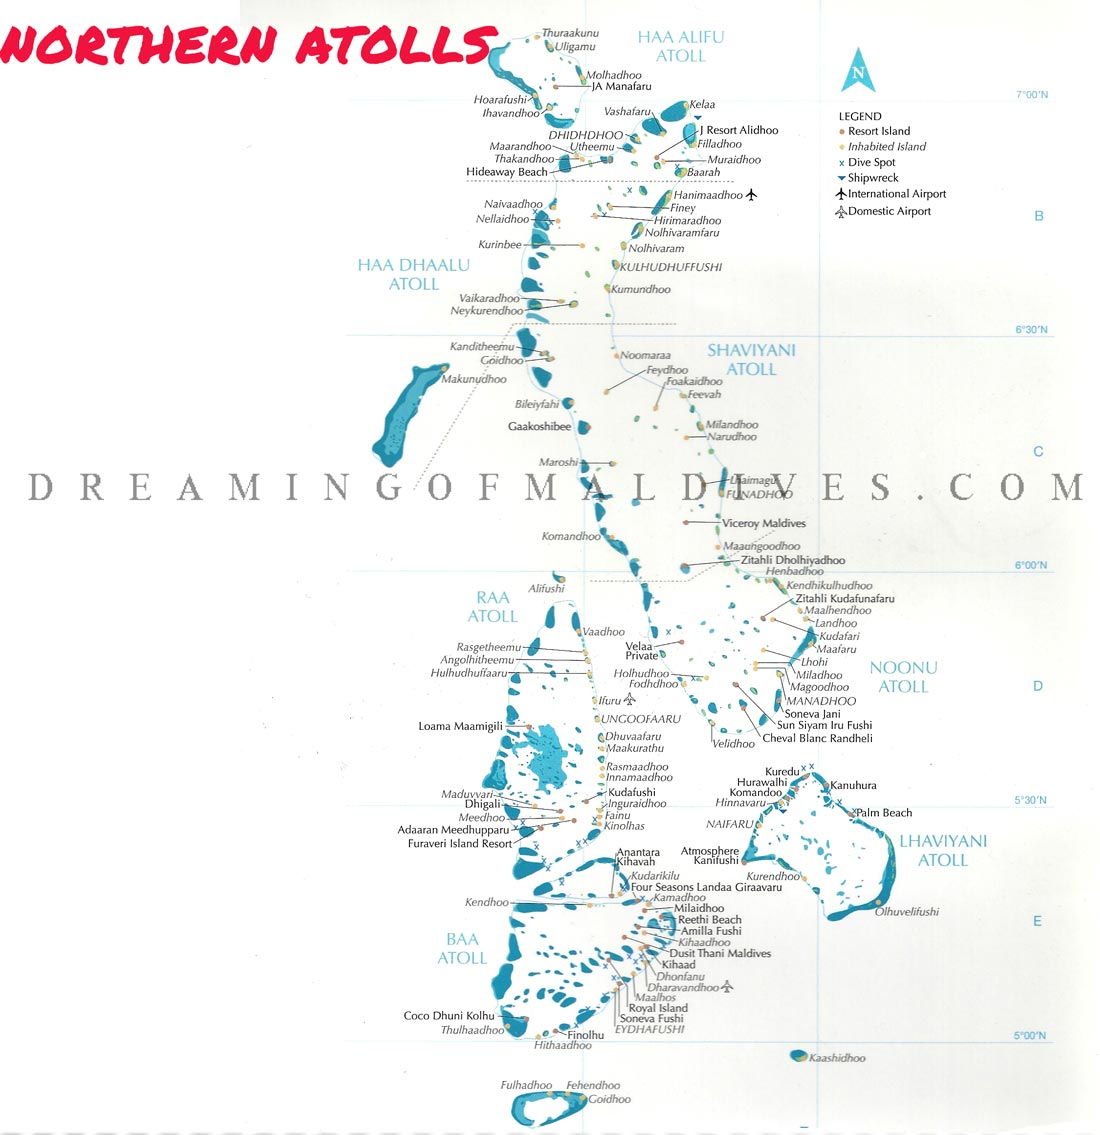 Northern Atolls. Maldives Map With All Resorts, Key Islands ... on australia map, seychelles map, bora bora, india map, japan map, pakistan map, germany map, philippines map, mexico map, indian ocean, lebanon map, tonga island map, maldives atoll map, sri lanka, world map, indian ocean map, hong kong map, malaysia map, belize map, java island map, celebes island map, myanmar map, taiwan map,